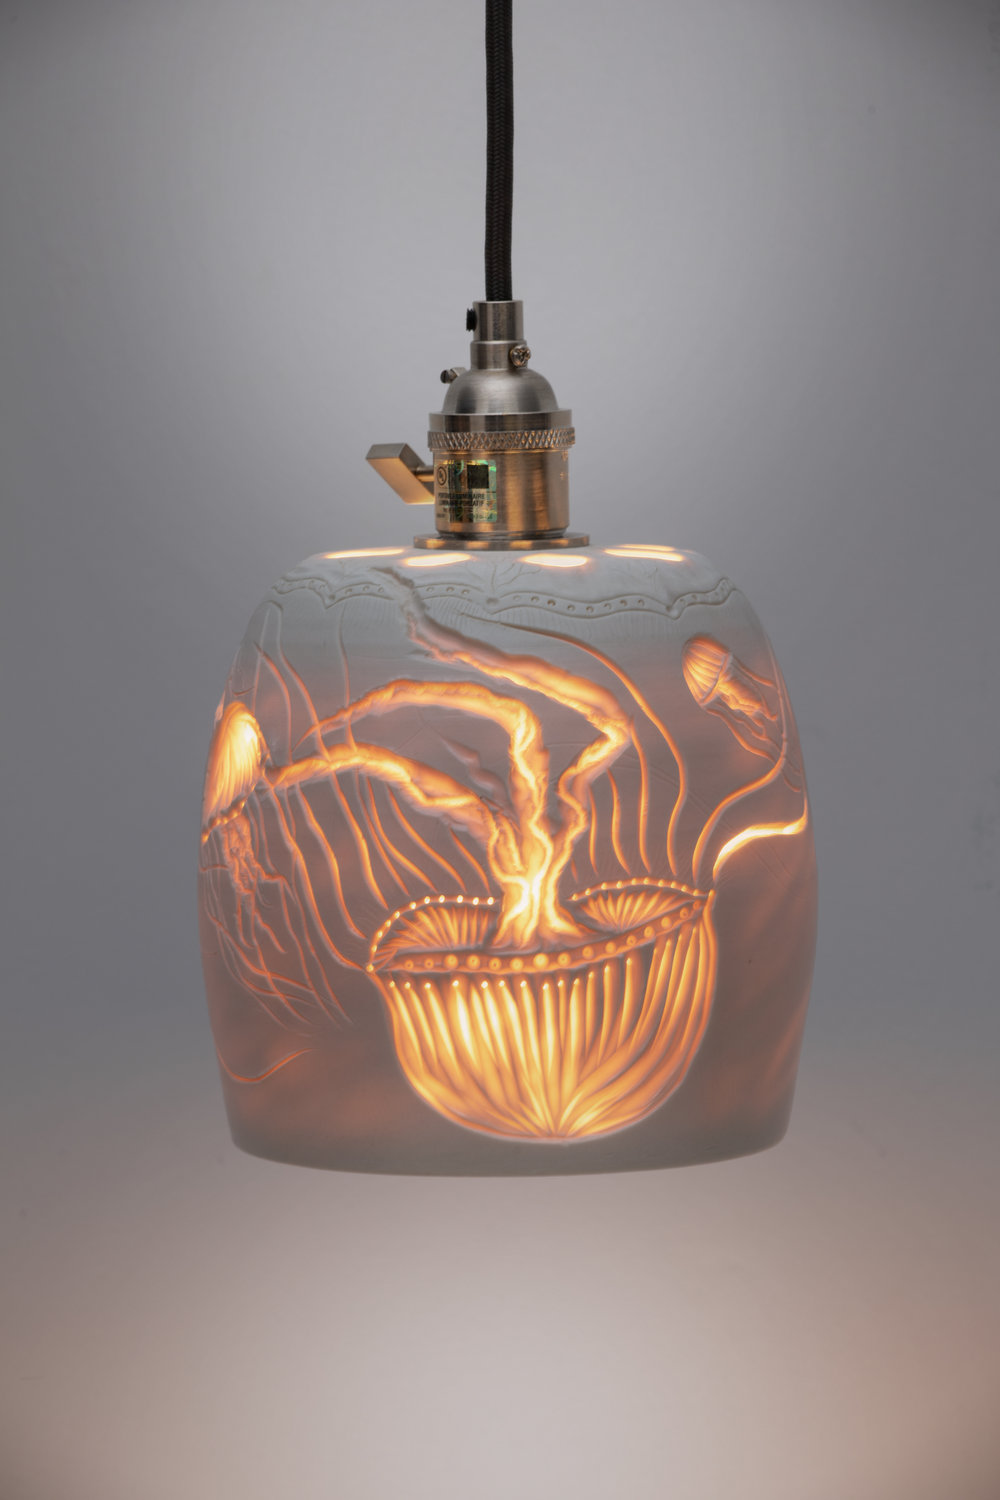 jellyfish pendant lamp  porcelain, electric fired